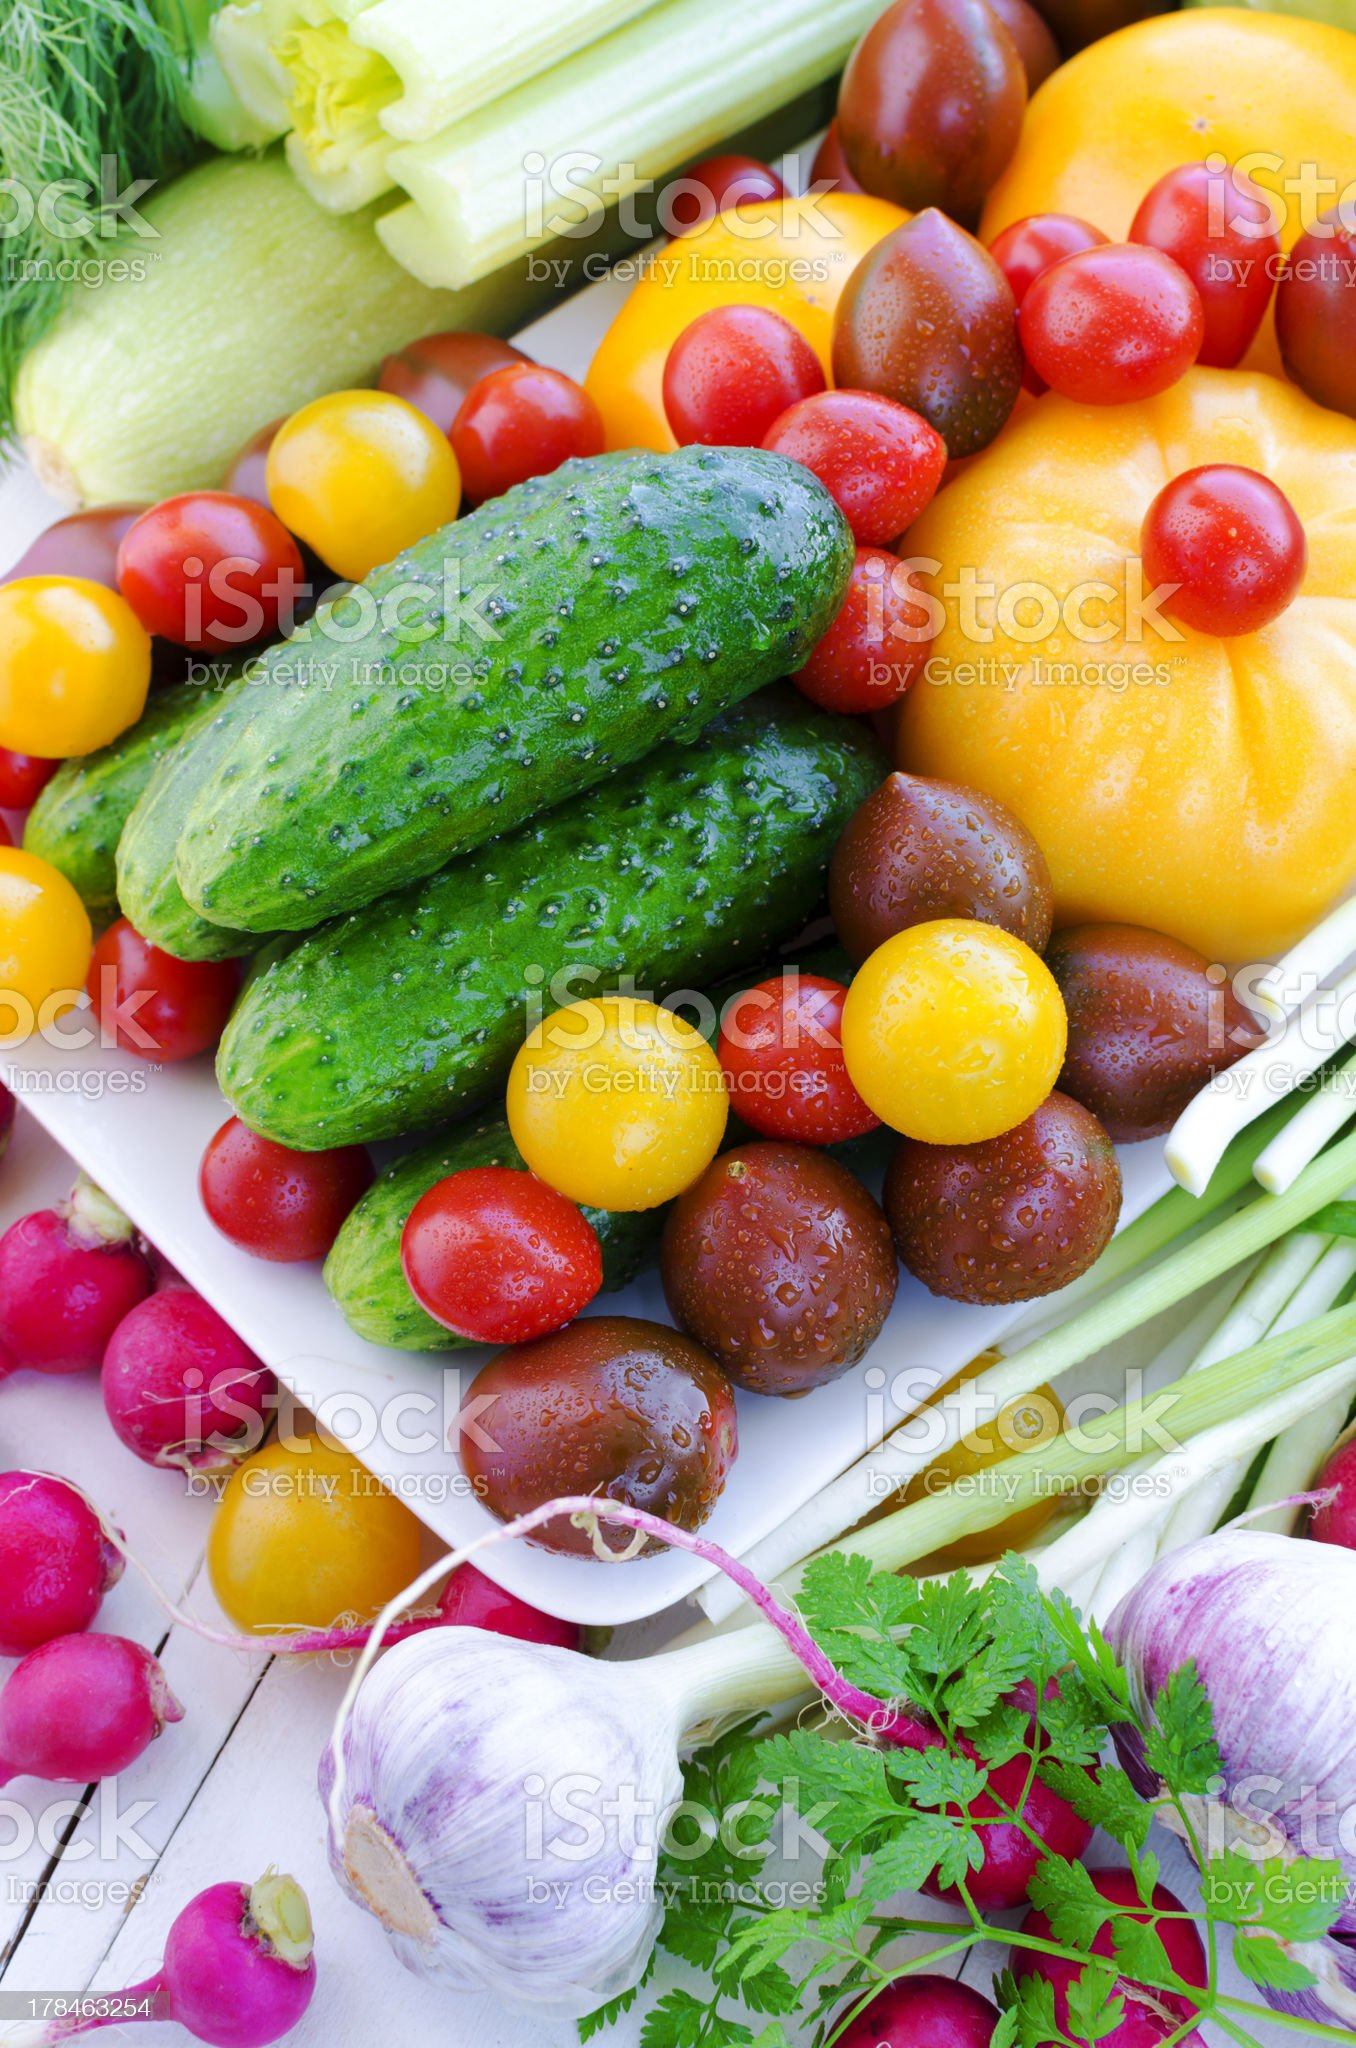 Fresh Spring Vegetables royalty-free stock photo